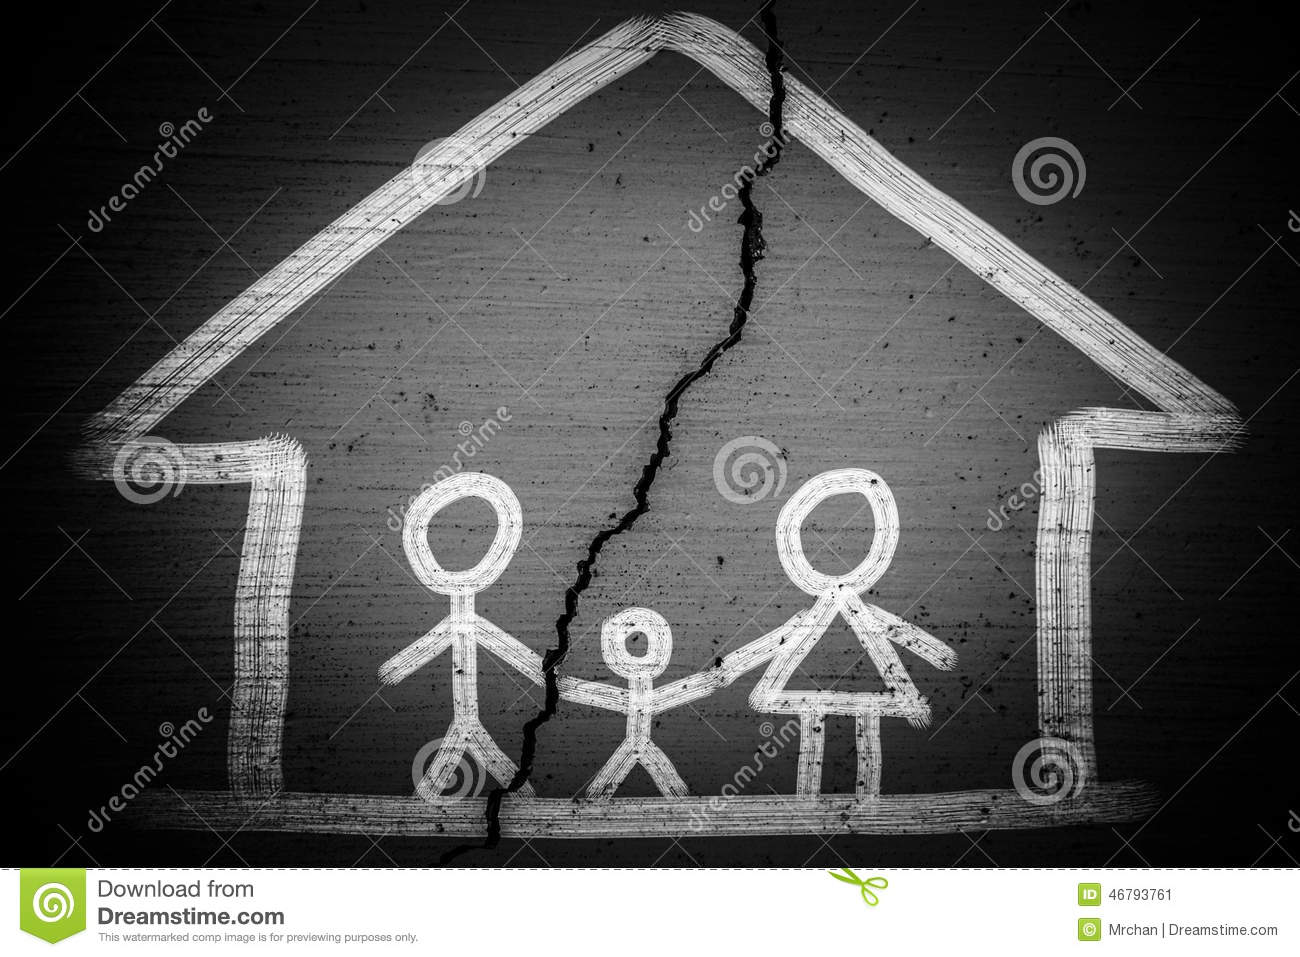 family picture with a crack which means Broken Family Concept.